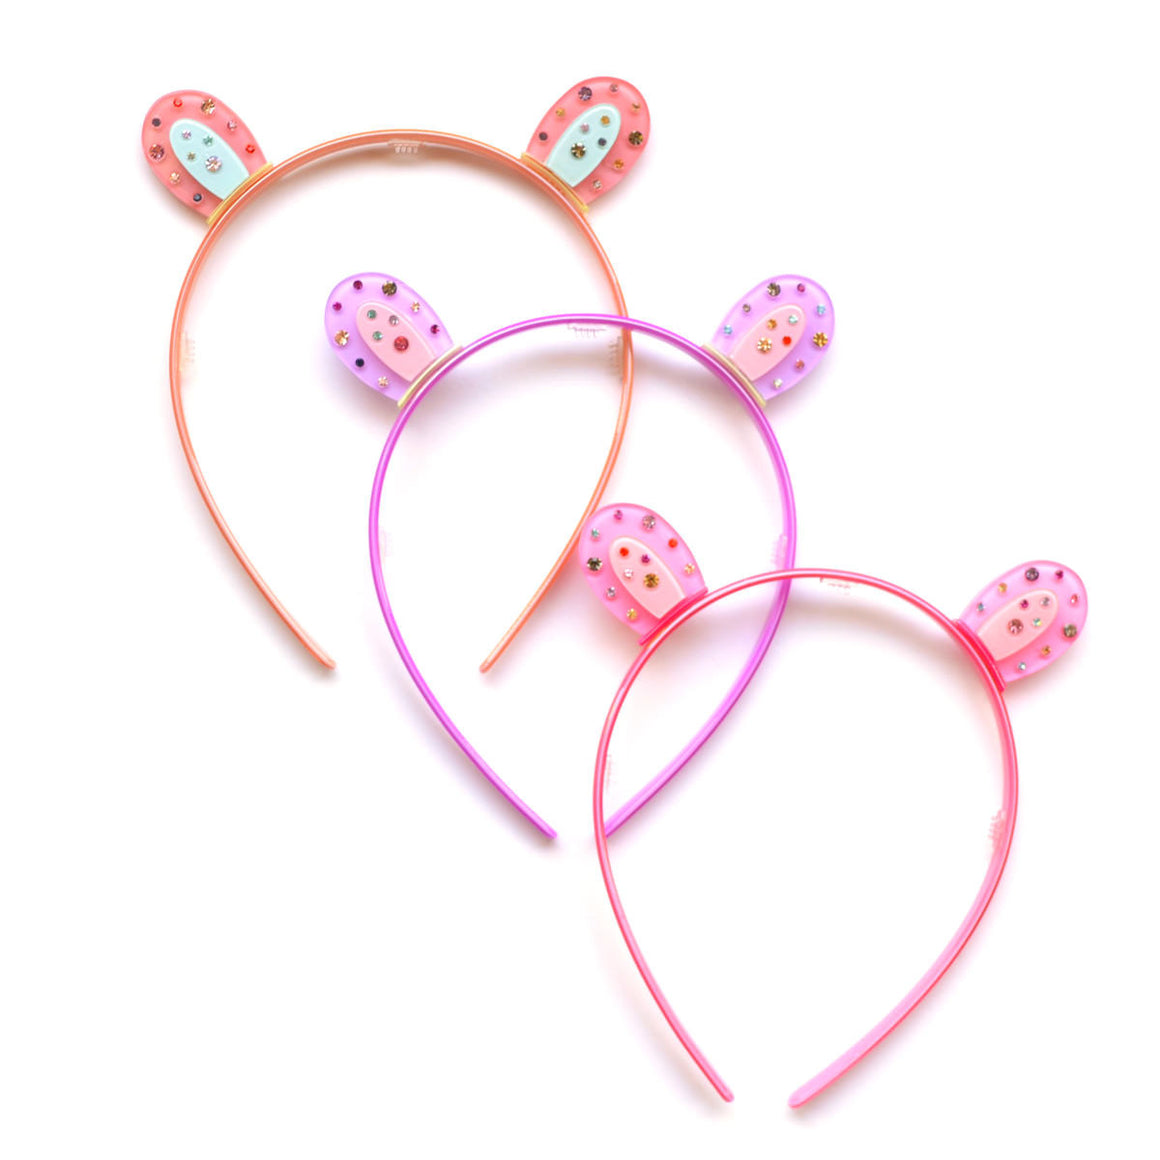 jeweled bear ear headband // hello shiso hair accessories for girls